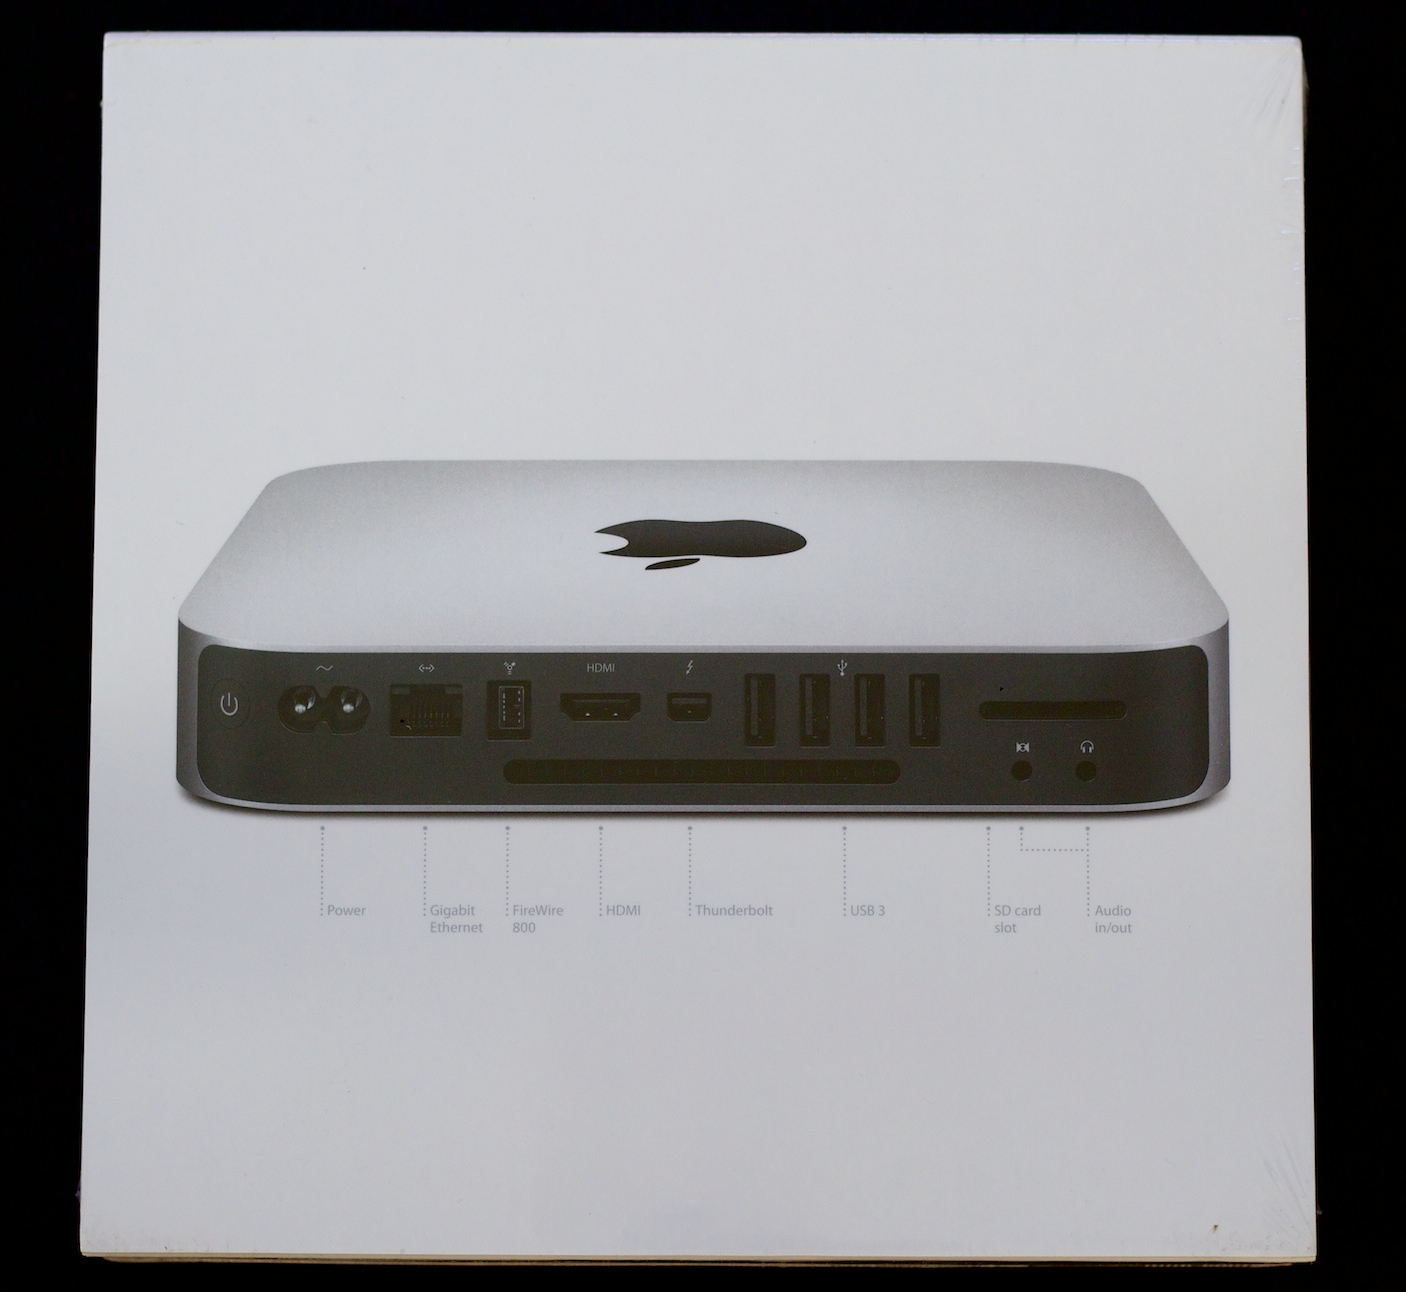 The Mac mini box, back, with ports called out.